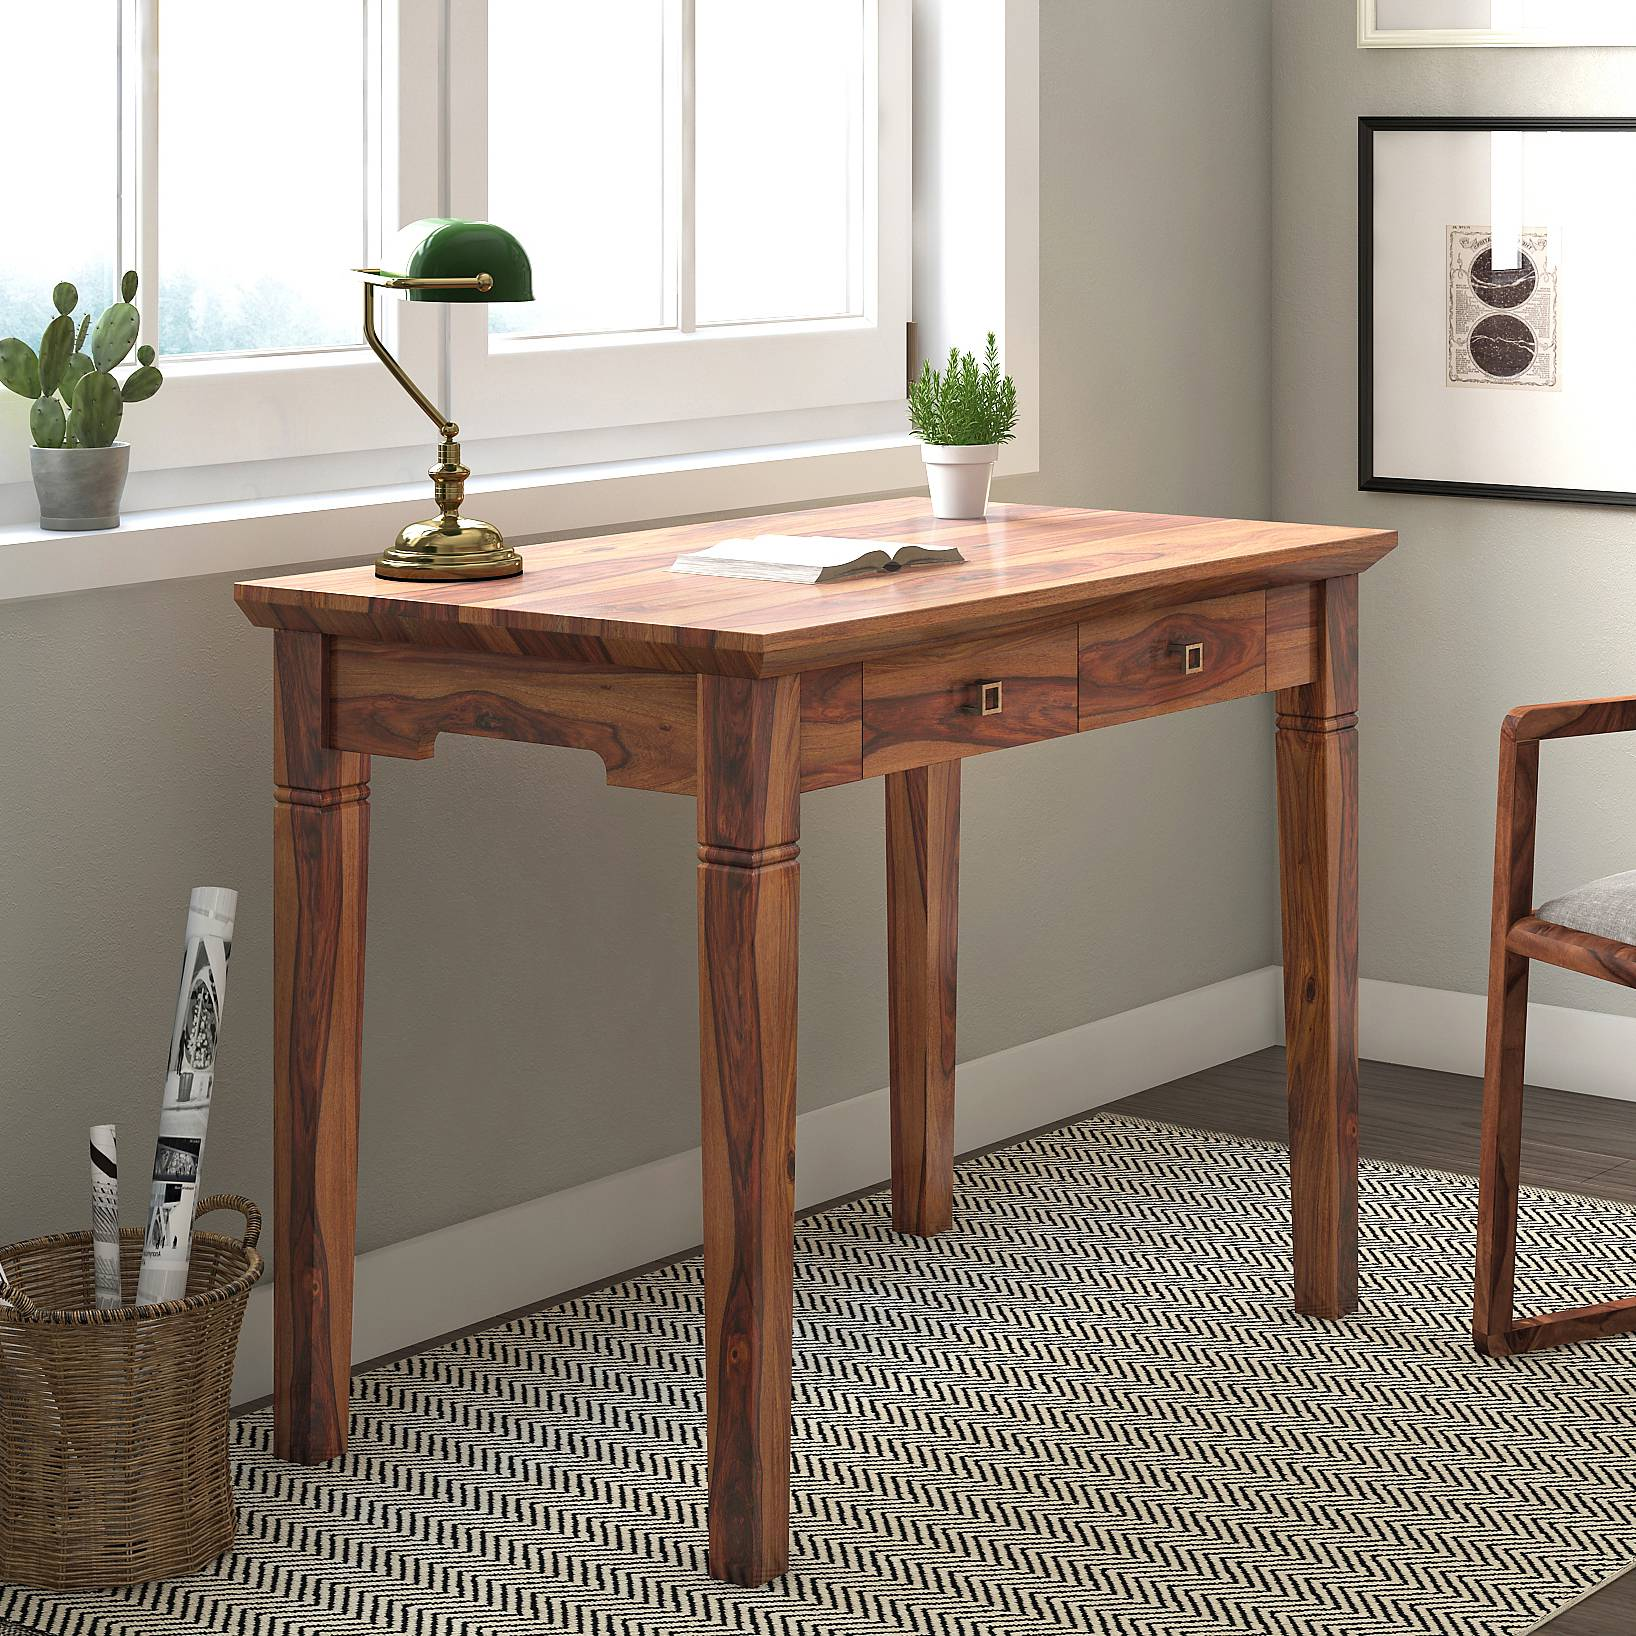 Study Table Upto 40 Off On Study Tables Online Latest Study Table Designs Urban Ladder